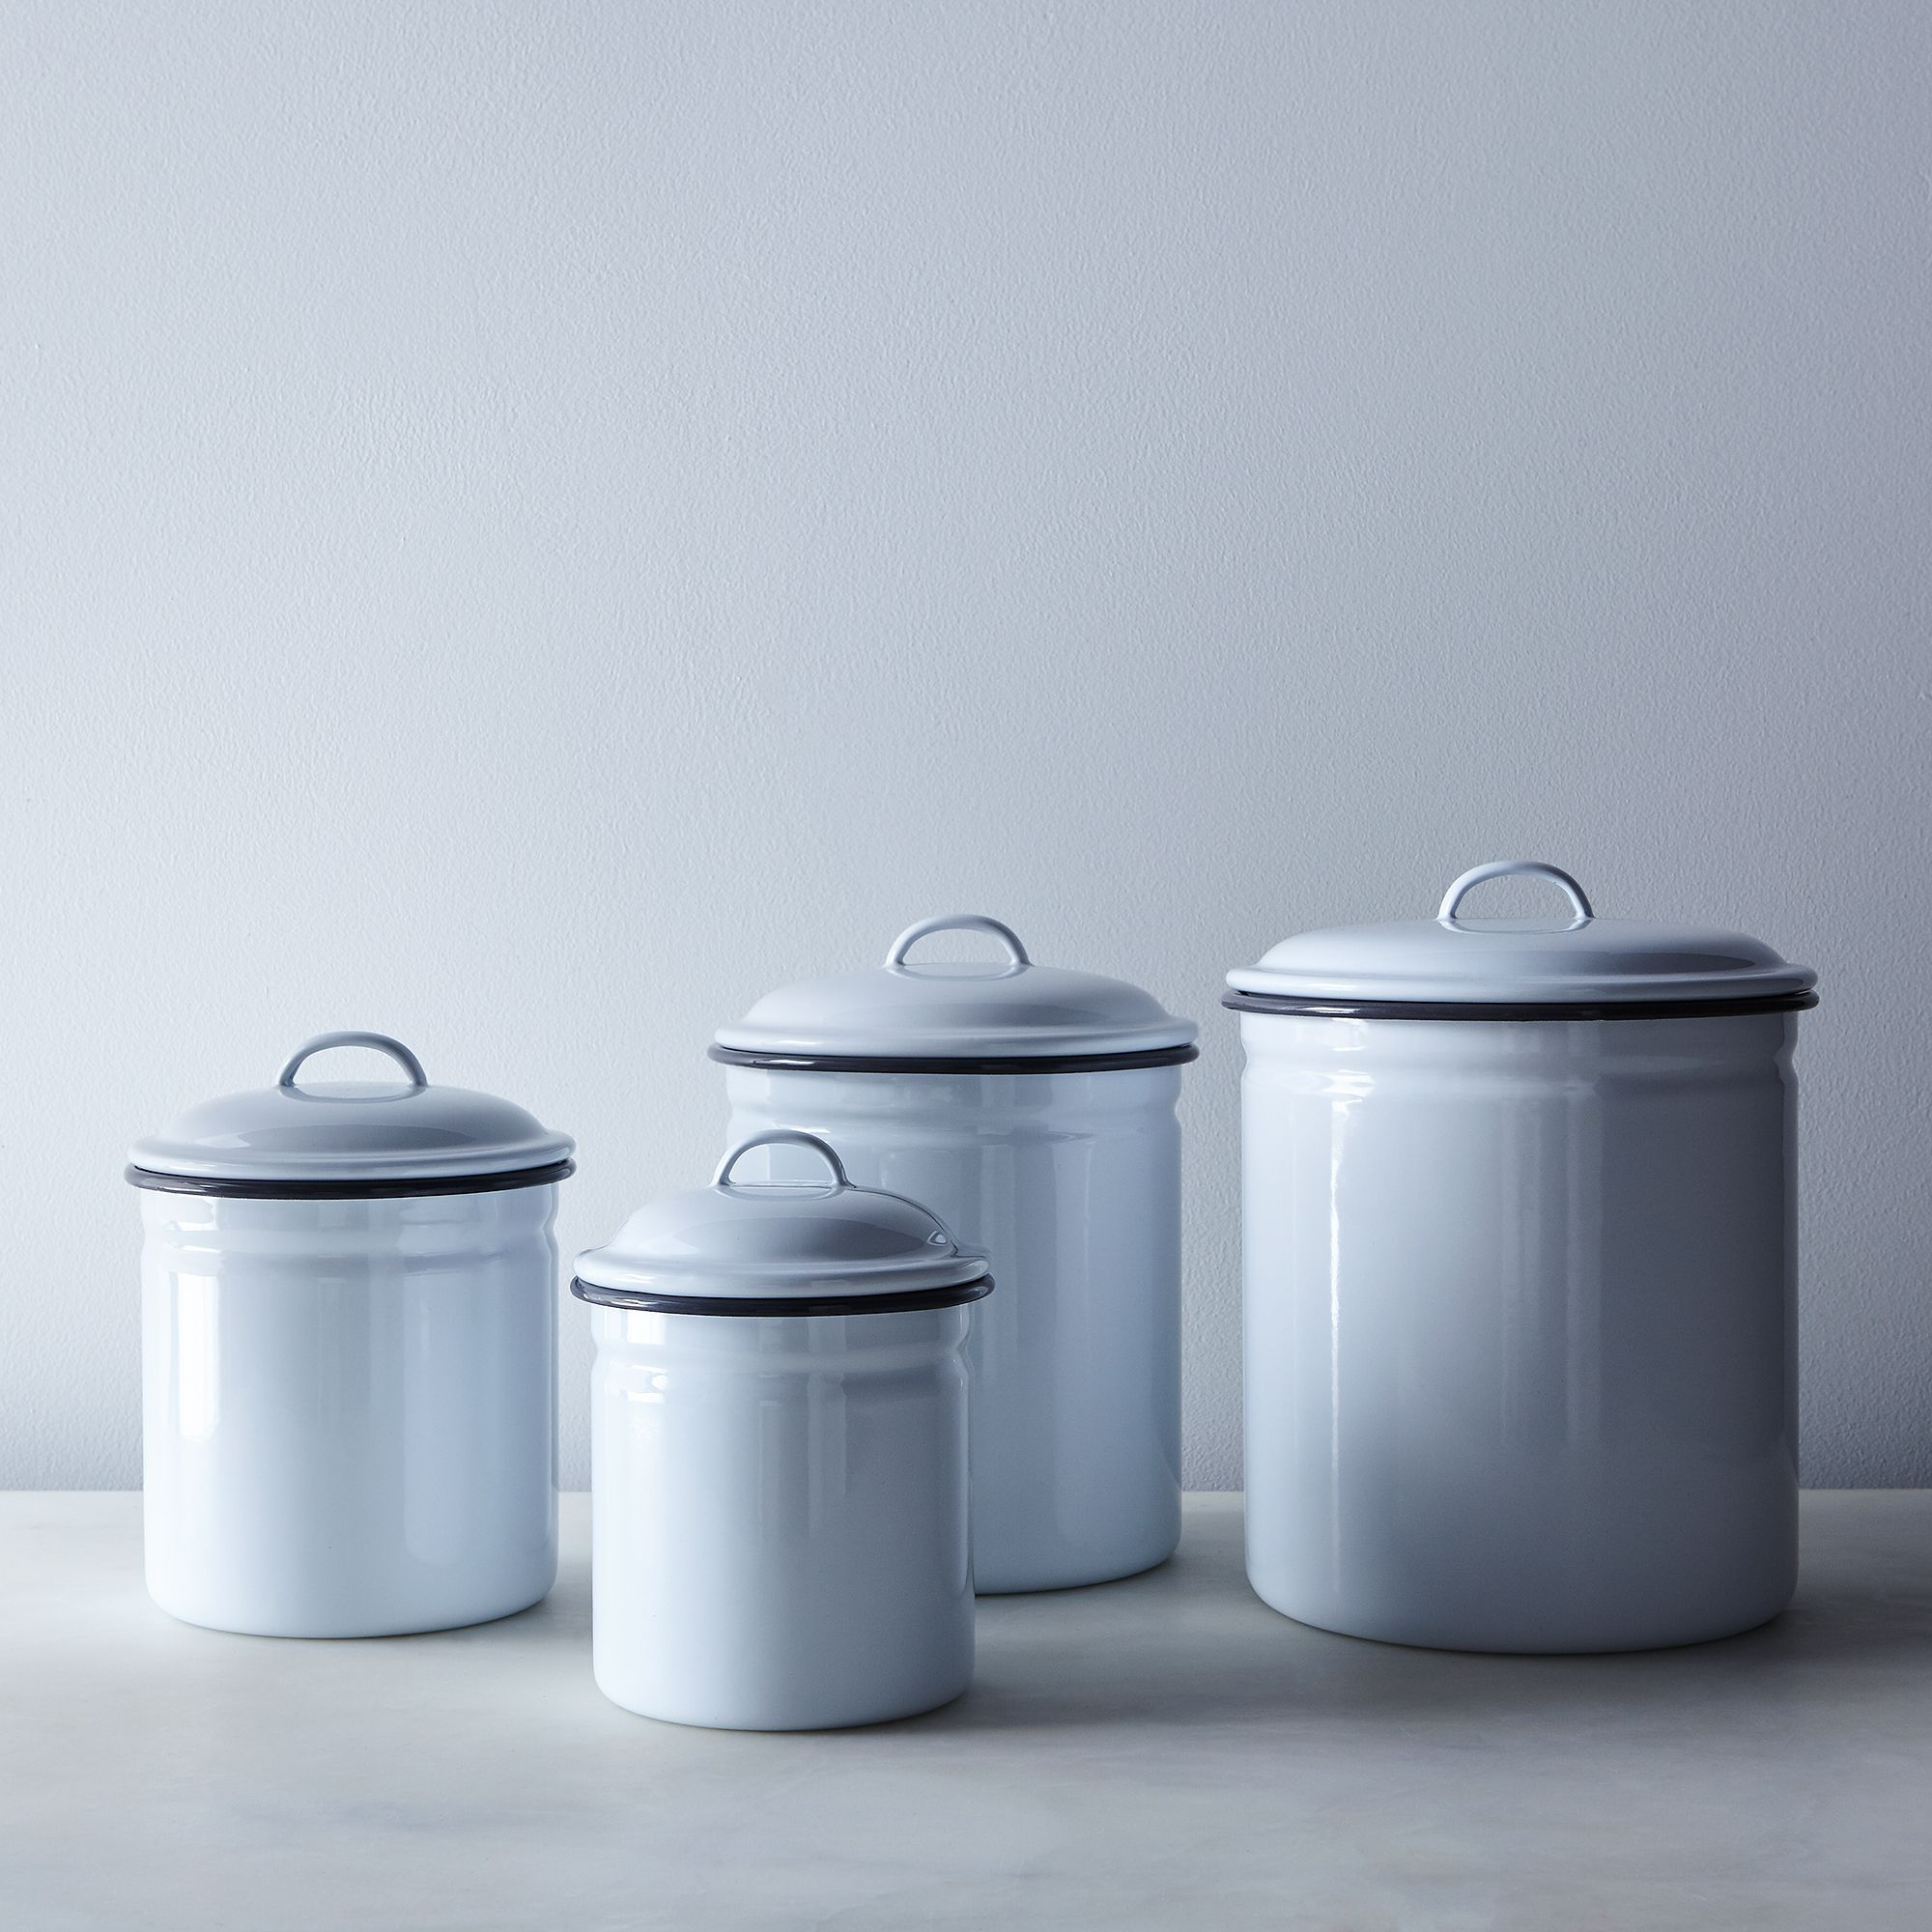 White & Grey Enamel Kitchen Canisters (Set of 4) | Home - Kitchen ...